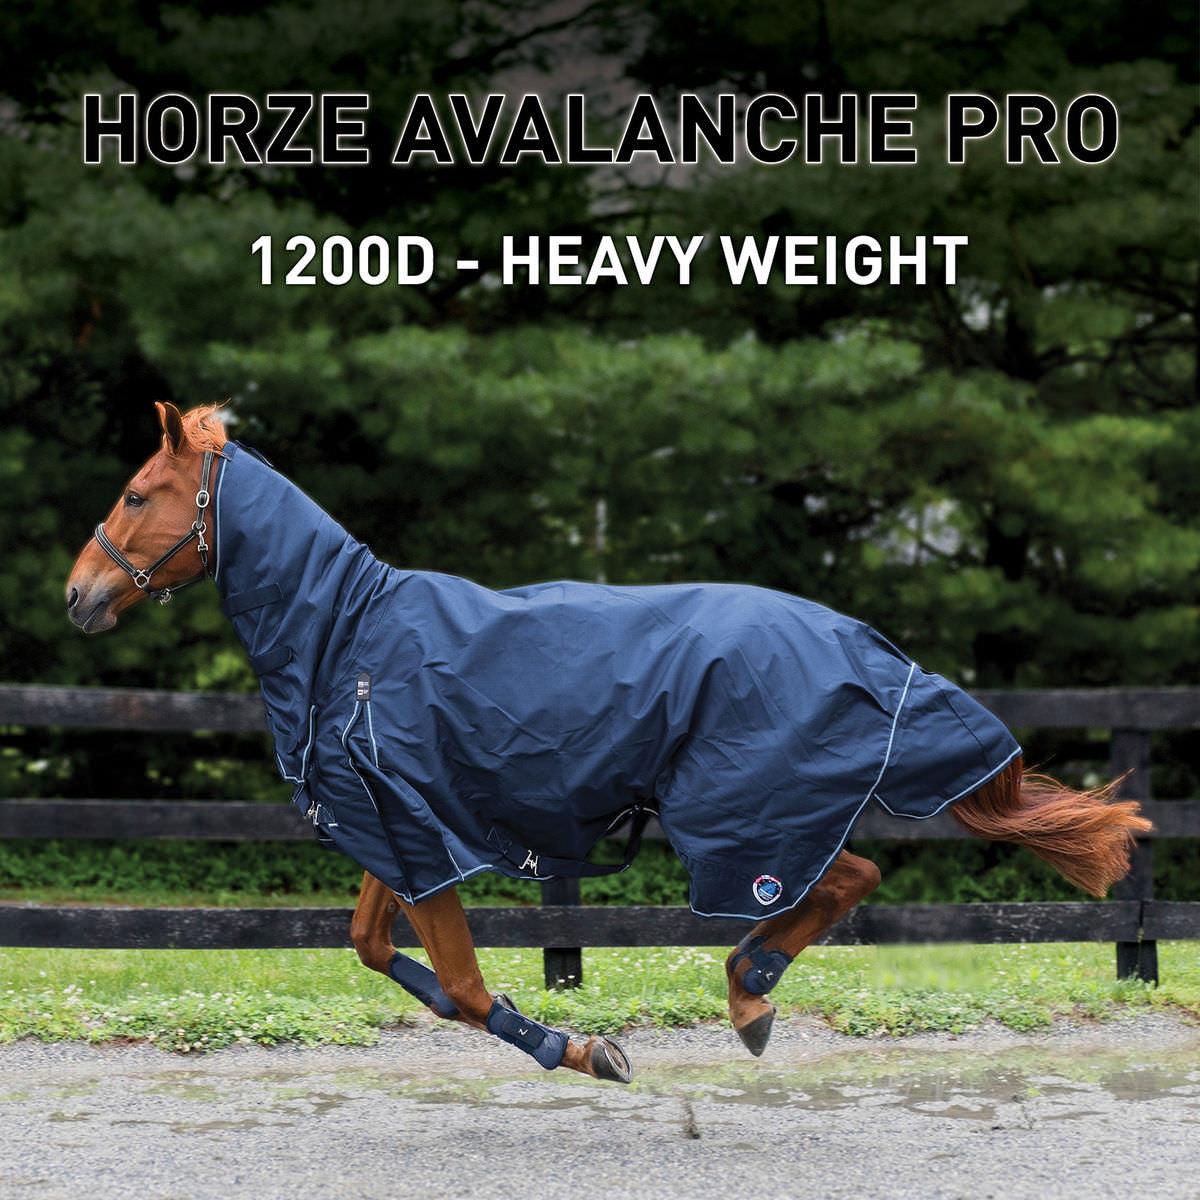 Couverture imperméable et doublée Supreme Avalanche 1200D Heavy Weight Combo Turnout - (Horze 24566)